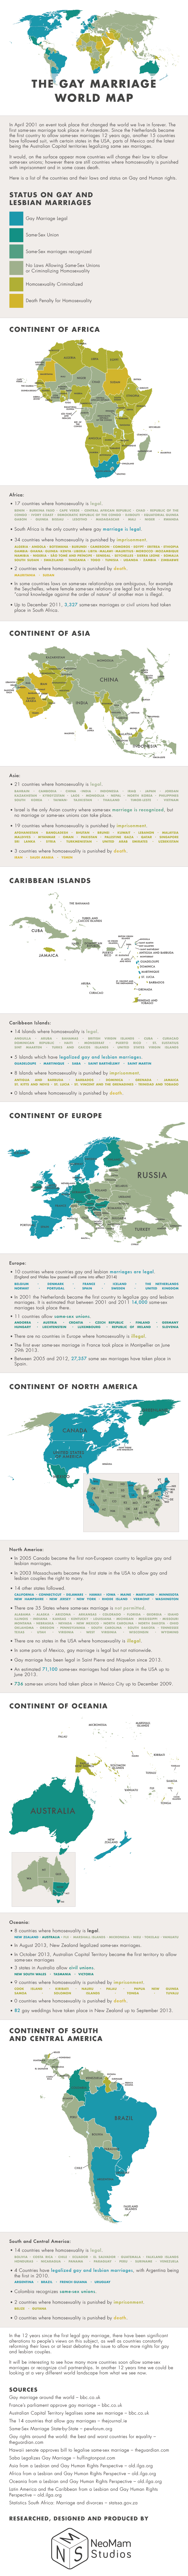 The Gay Marriage World Map #GayMarriage #Gay #World   #infographics repinned by @Piktochart